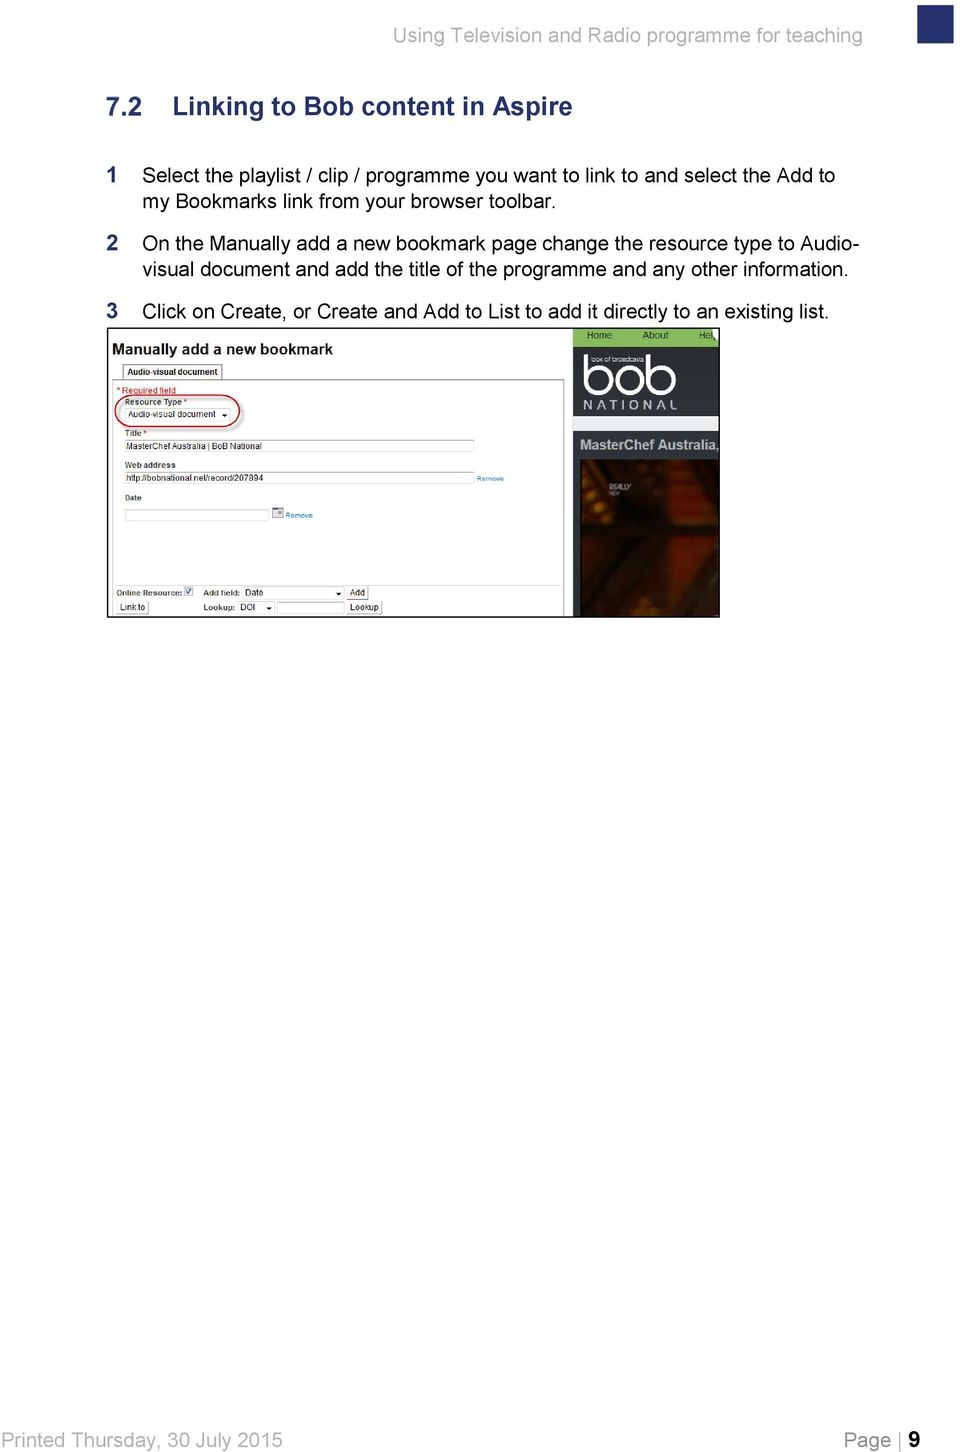 2 On the Manually add a new bookmark page change the resource type to Audiovisual document and add the title of the